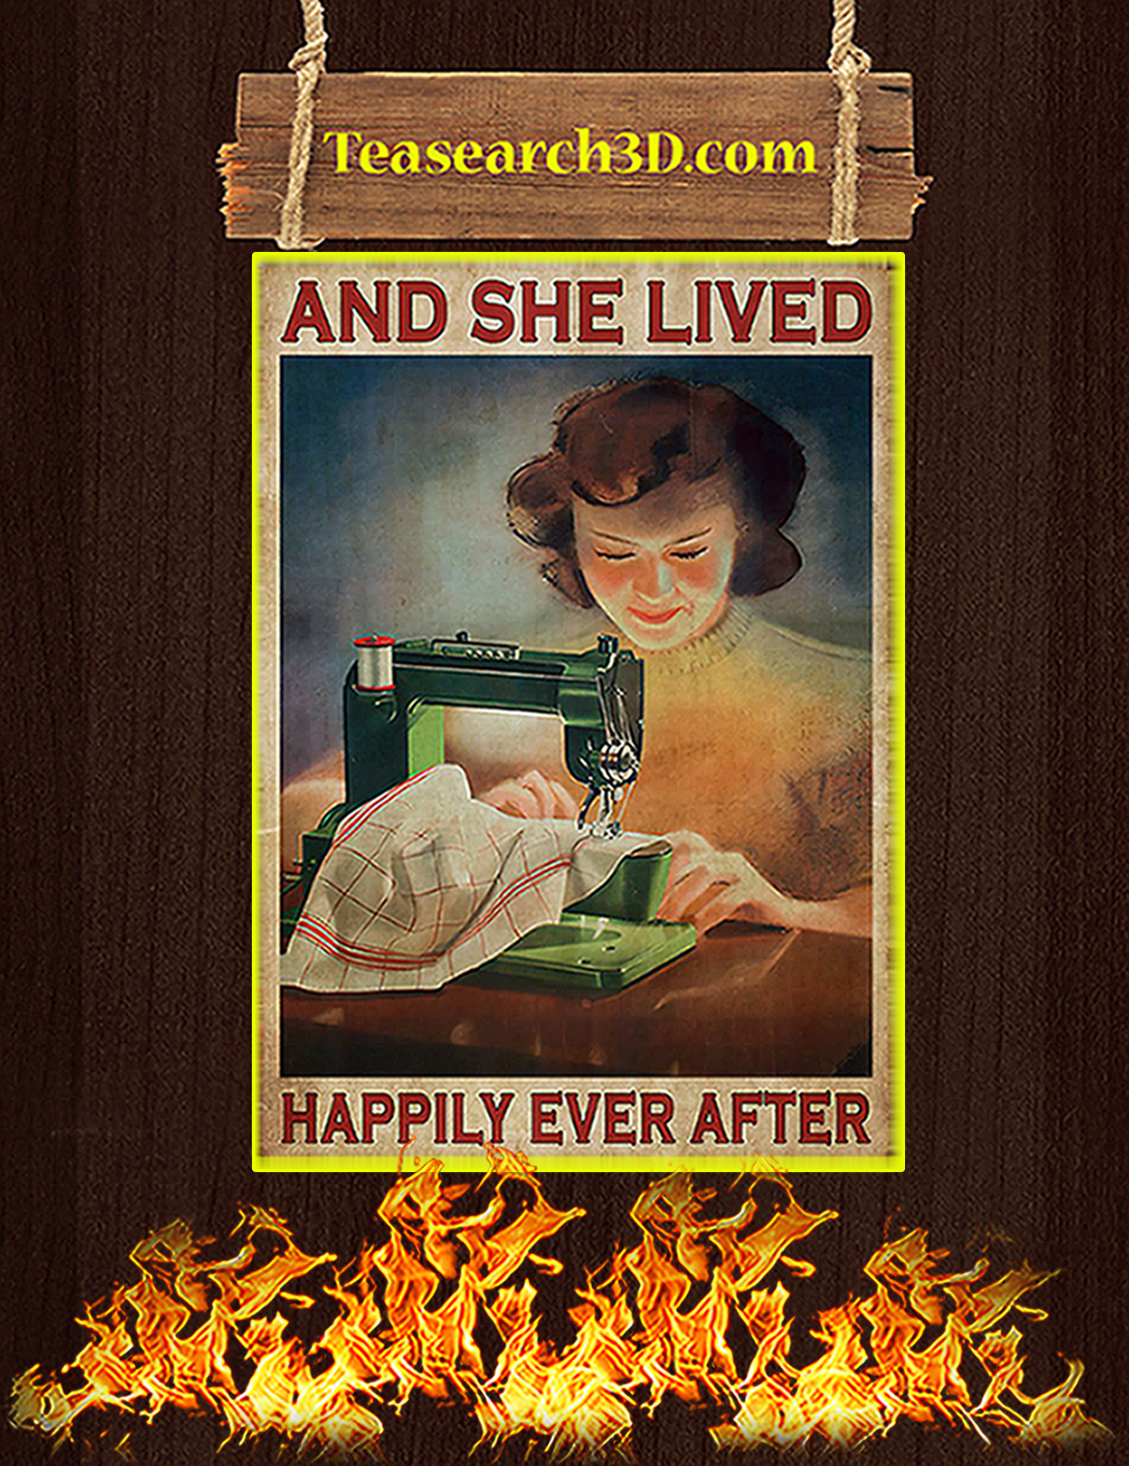 Girl sewing and she lived happily ever after poster A3